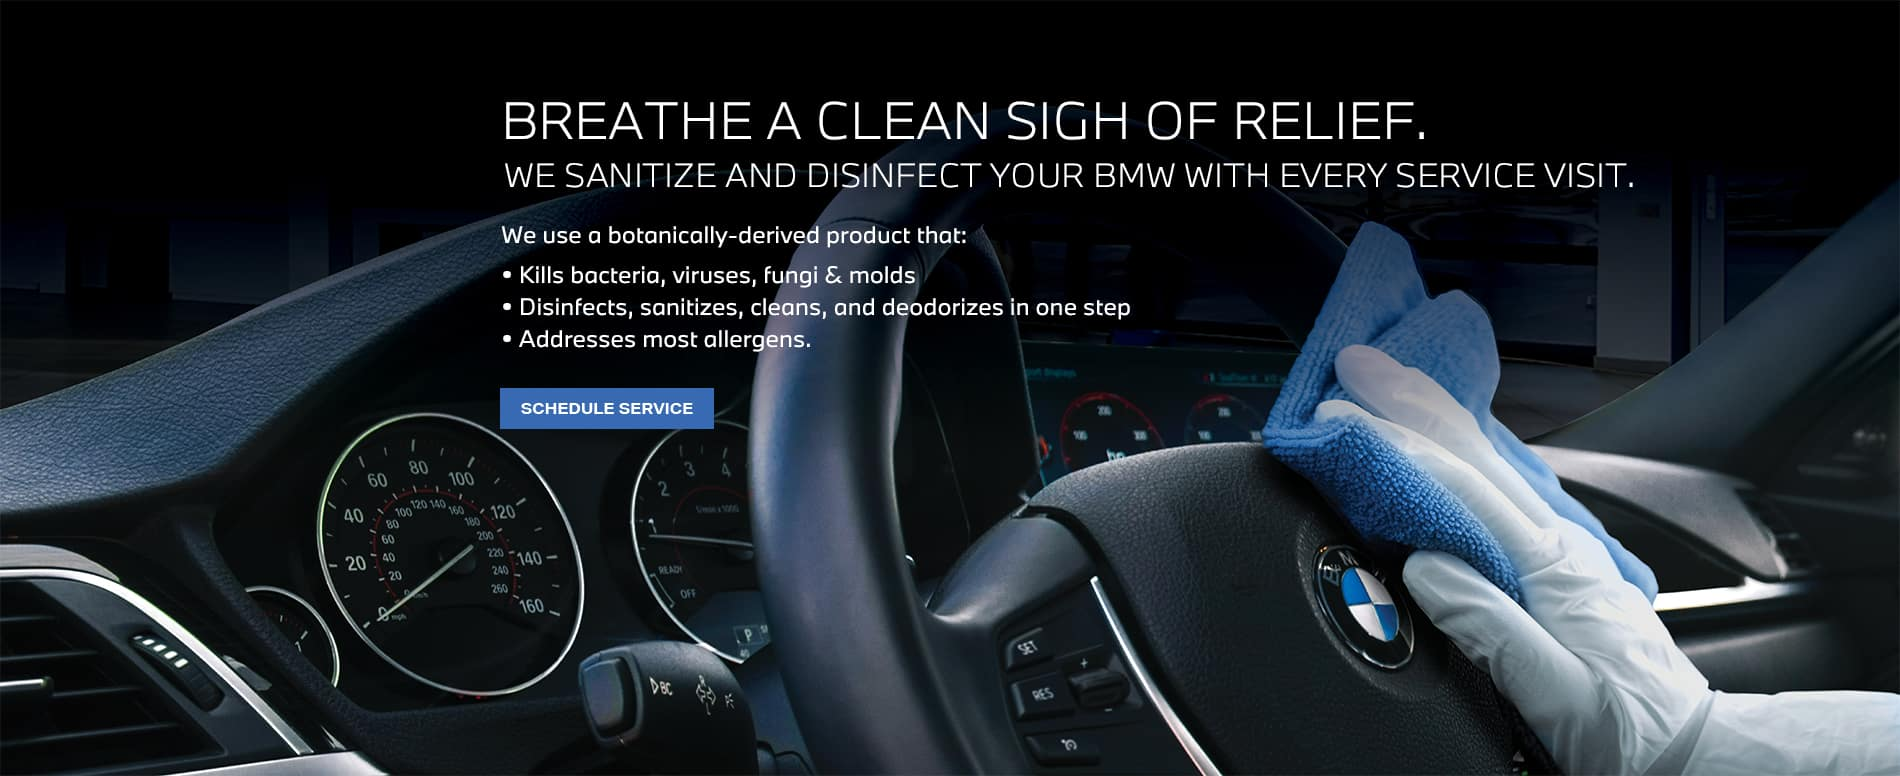 BMW_SanitizeSrvc_FMA1900x776_BreatheClean